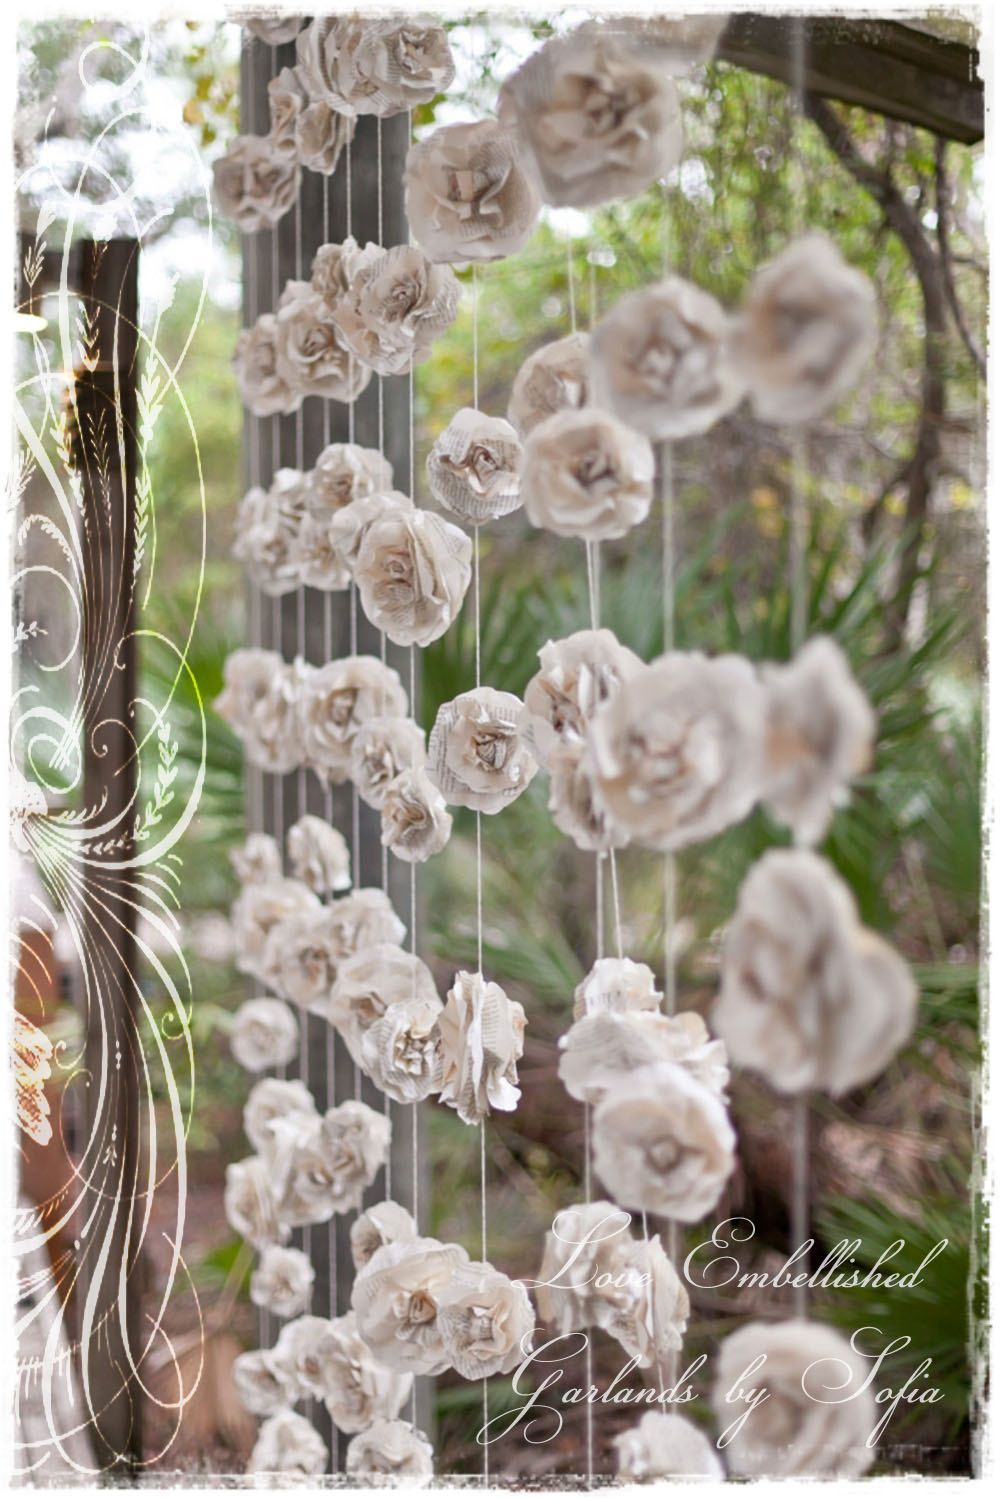 curtain of twelve 10 ft long individual rustic paper flowers roses garland backdrop vintage jane